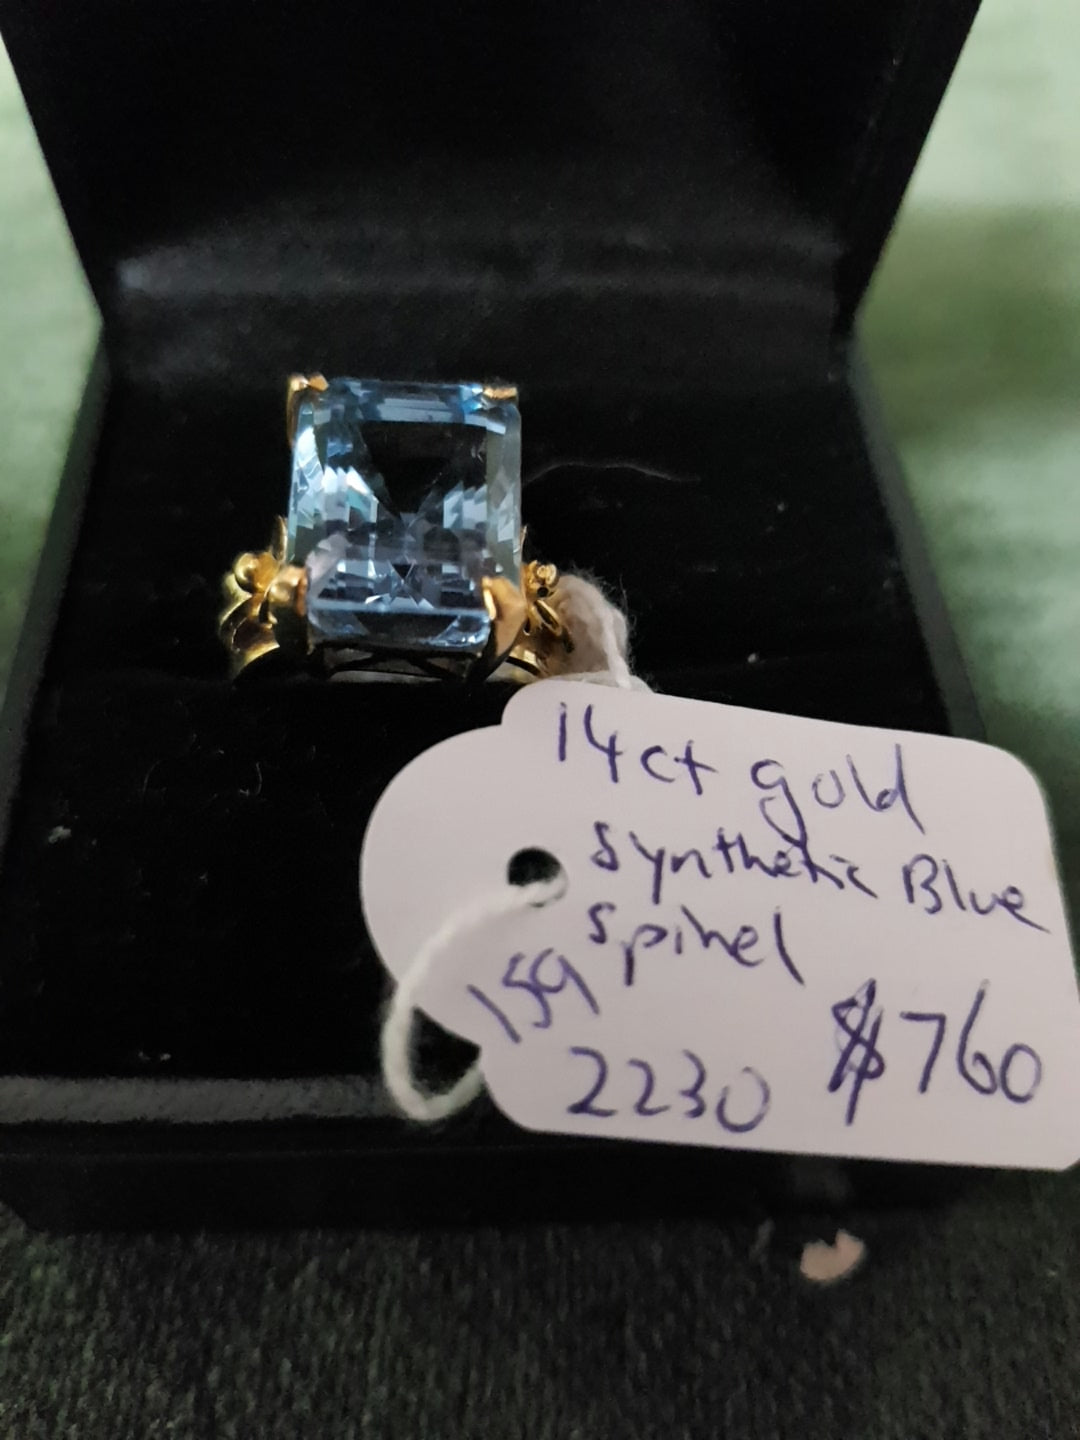 14ct Gold and synthetic blue Spinel ring #159